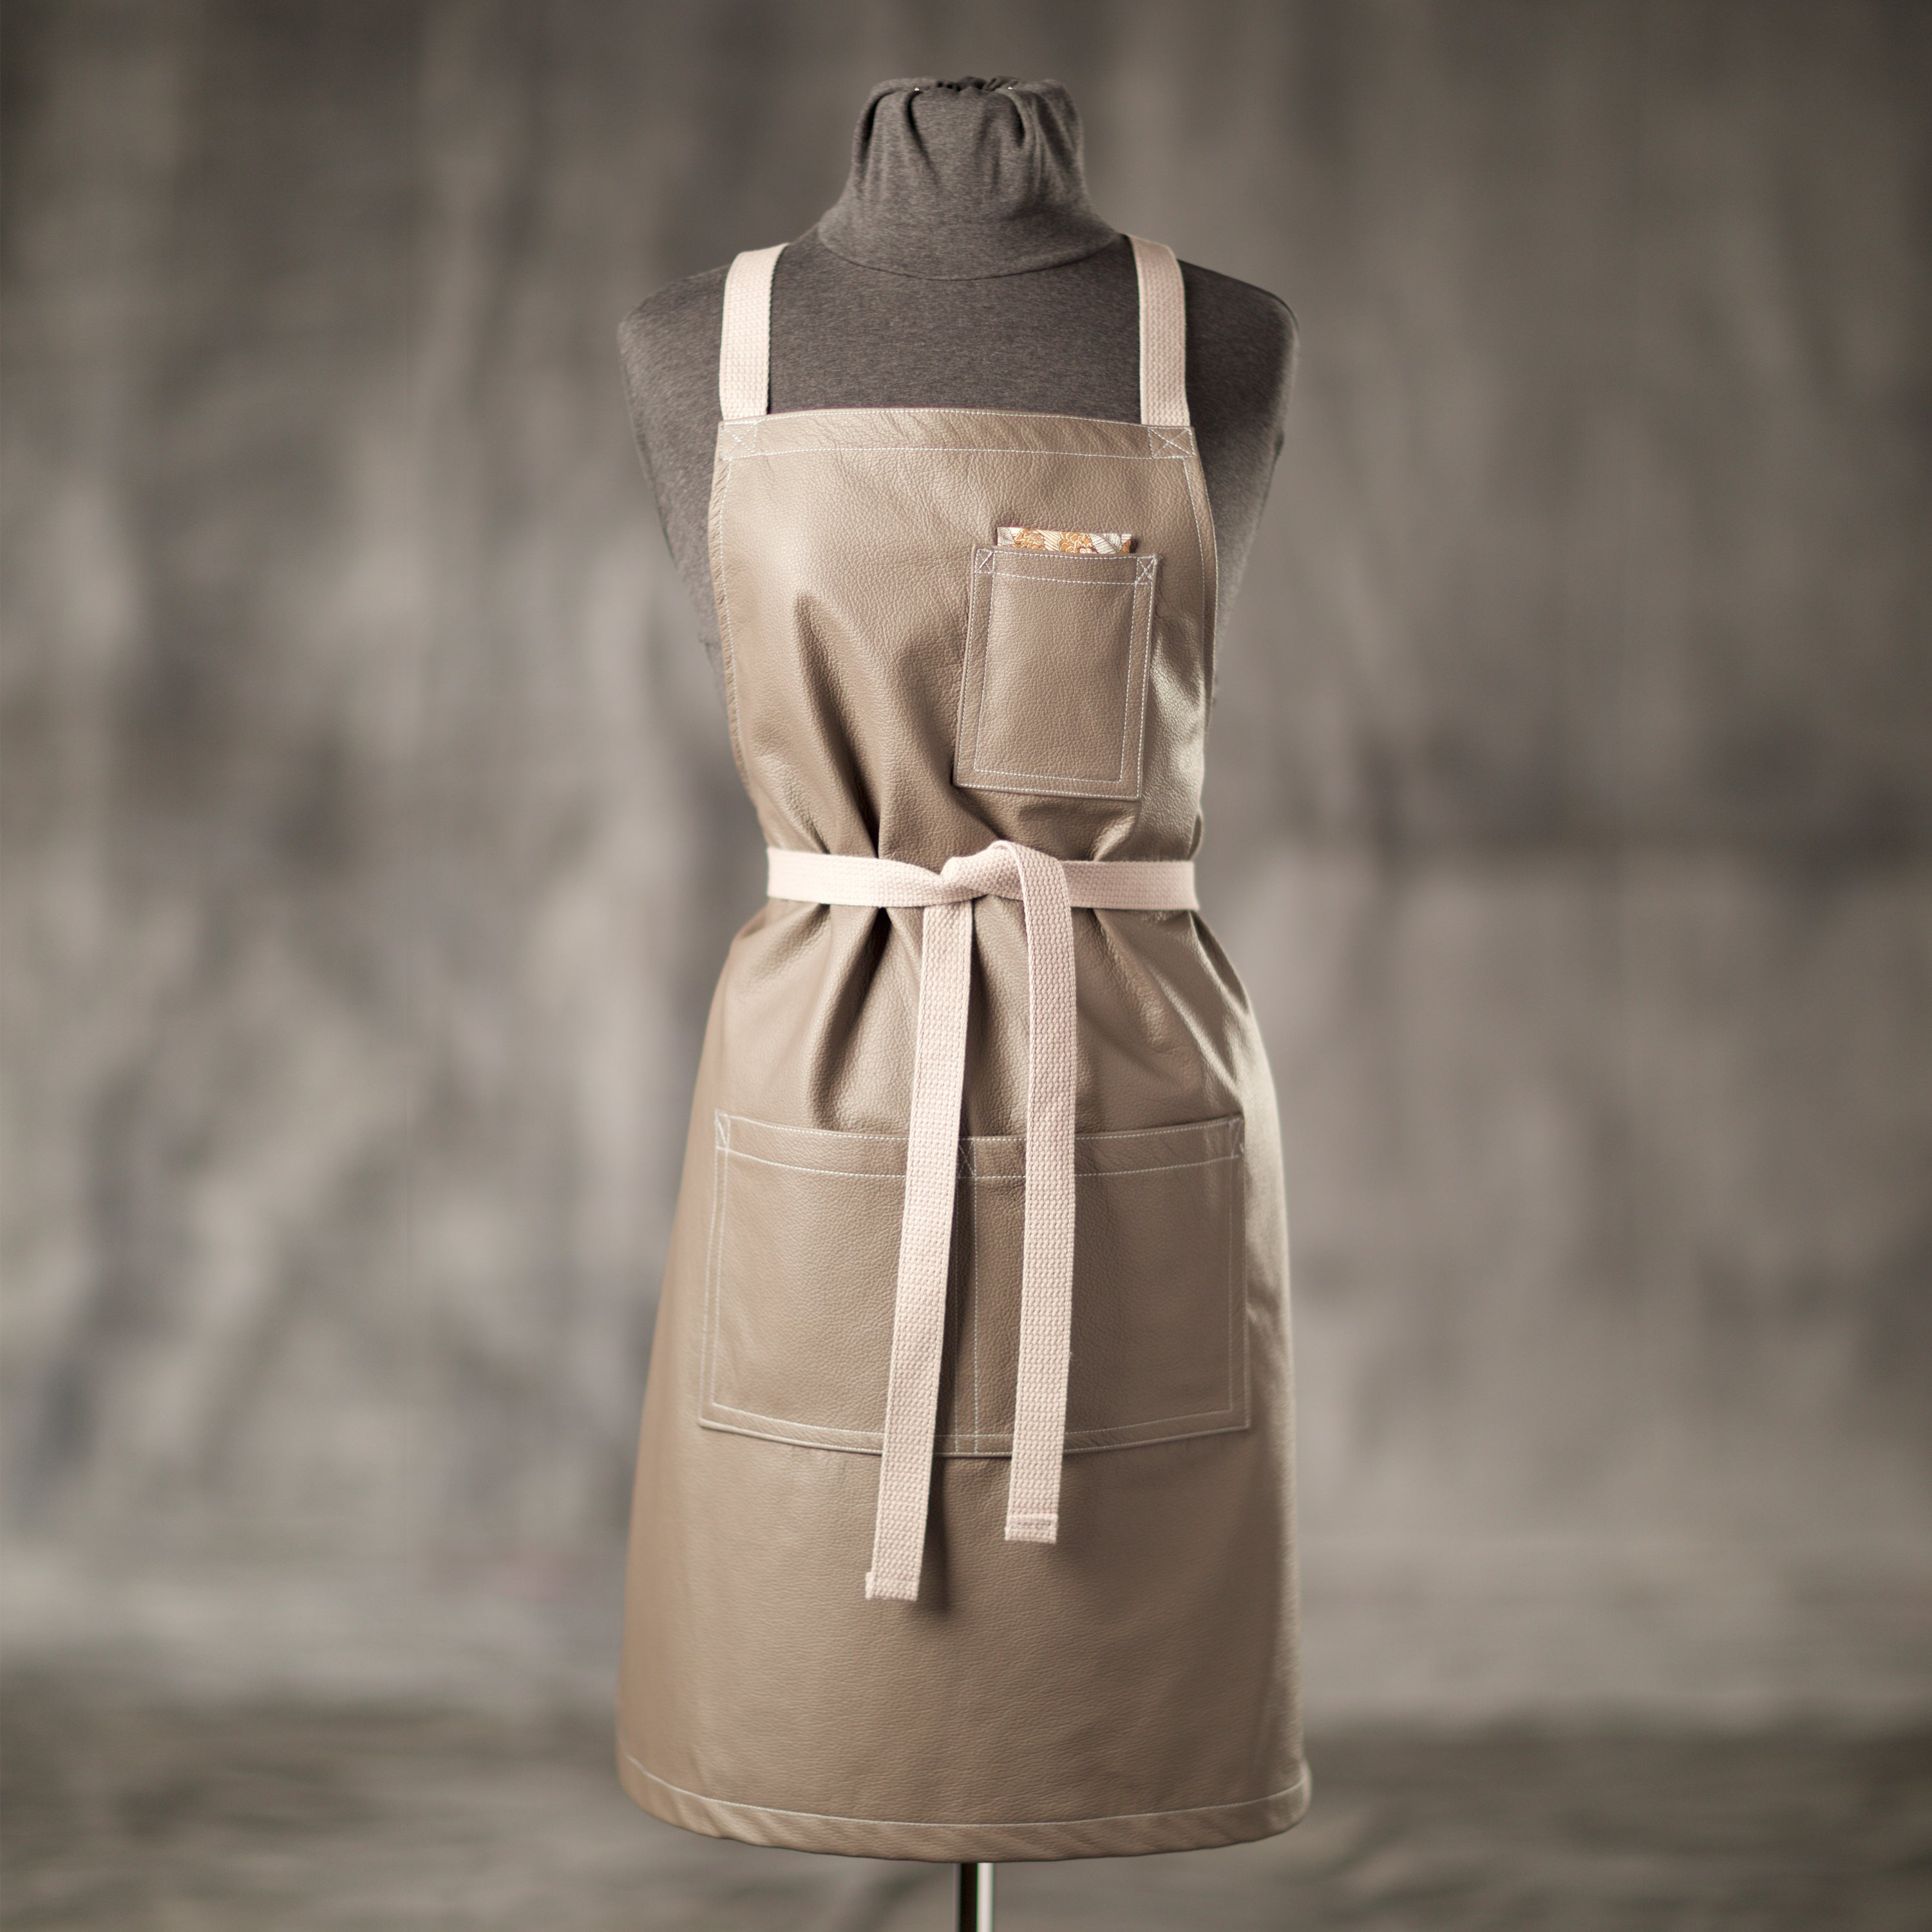 Macau Leather Apron Women's Front